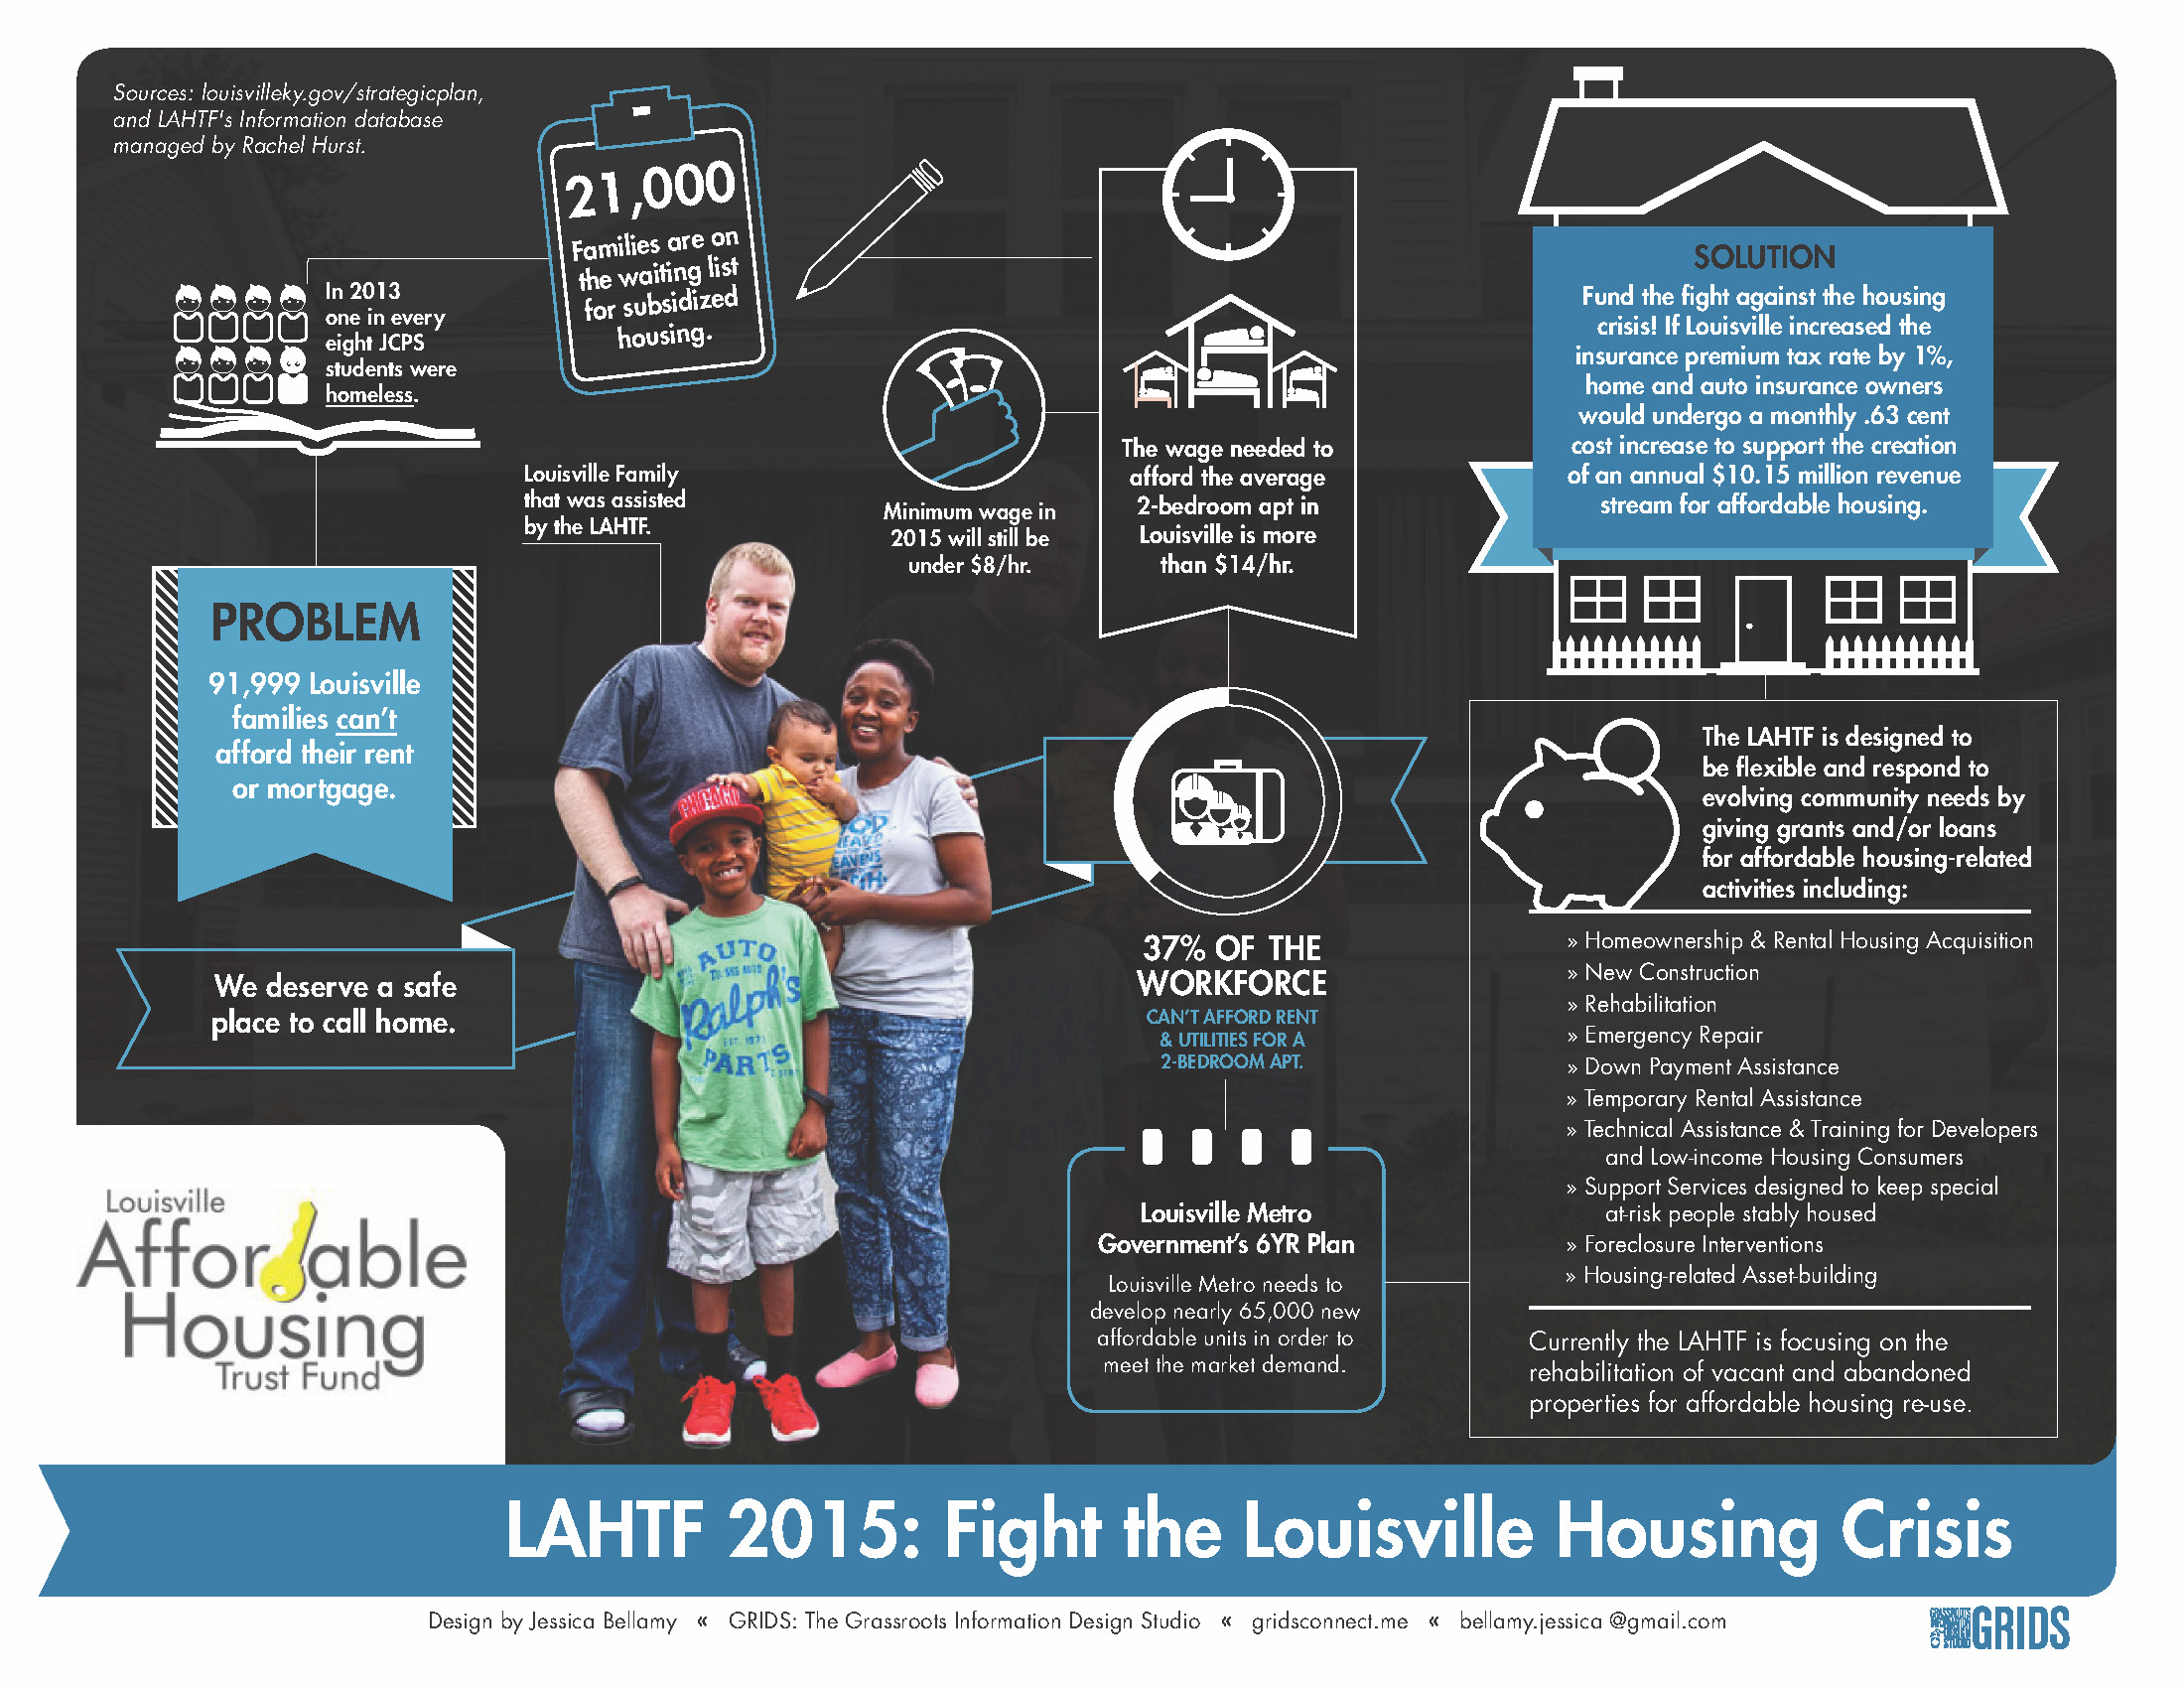 LAHTF Fact Sheet 2015